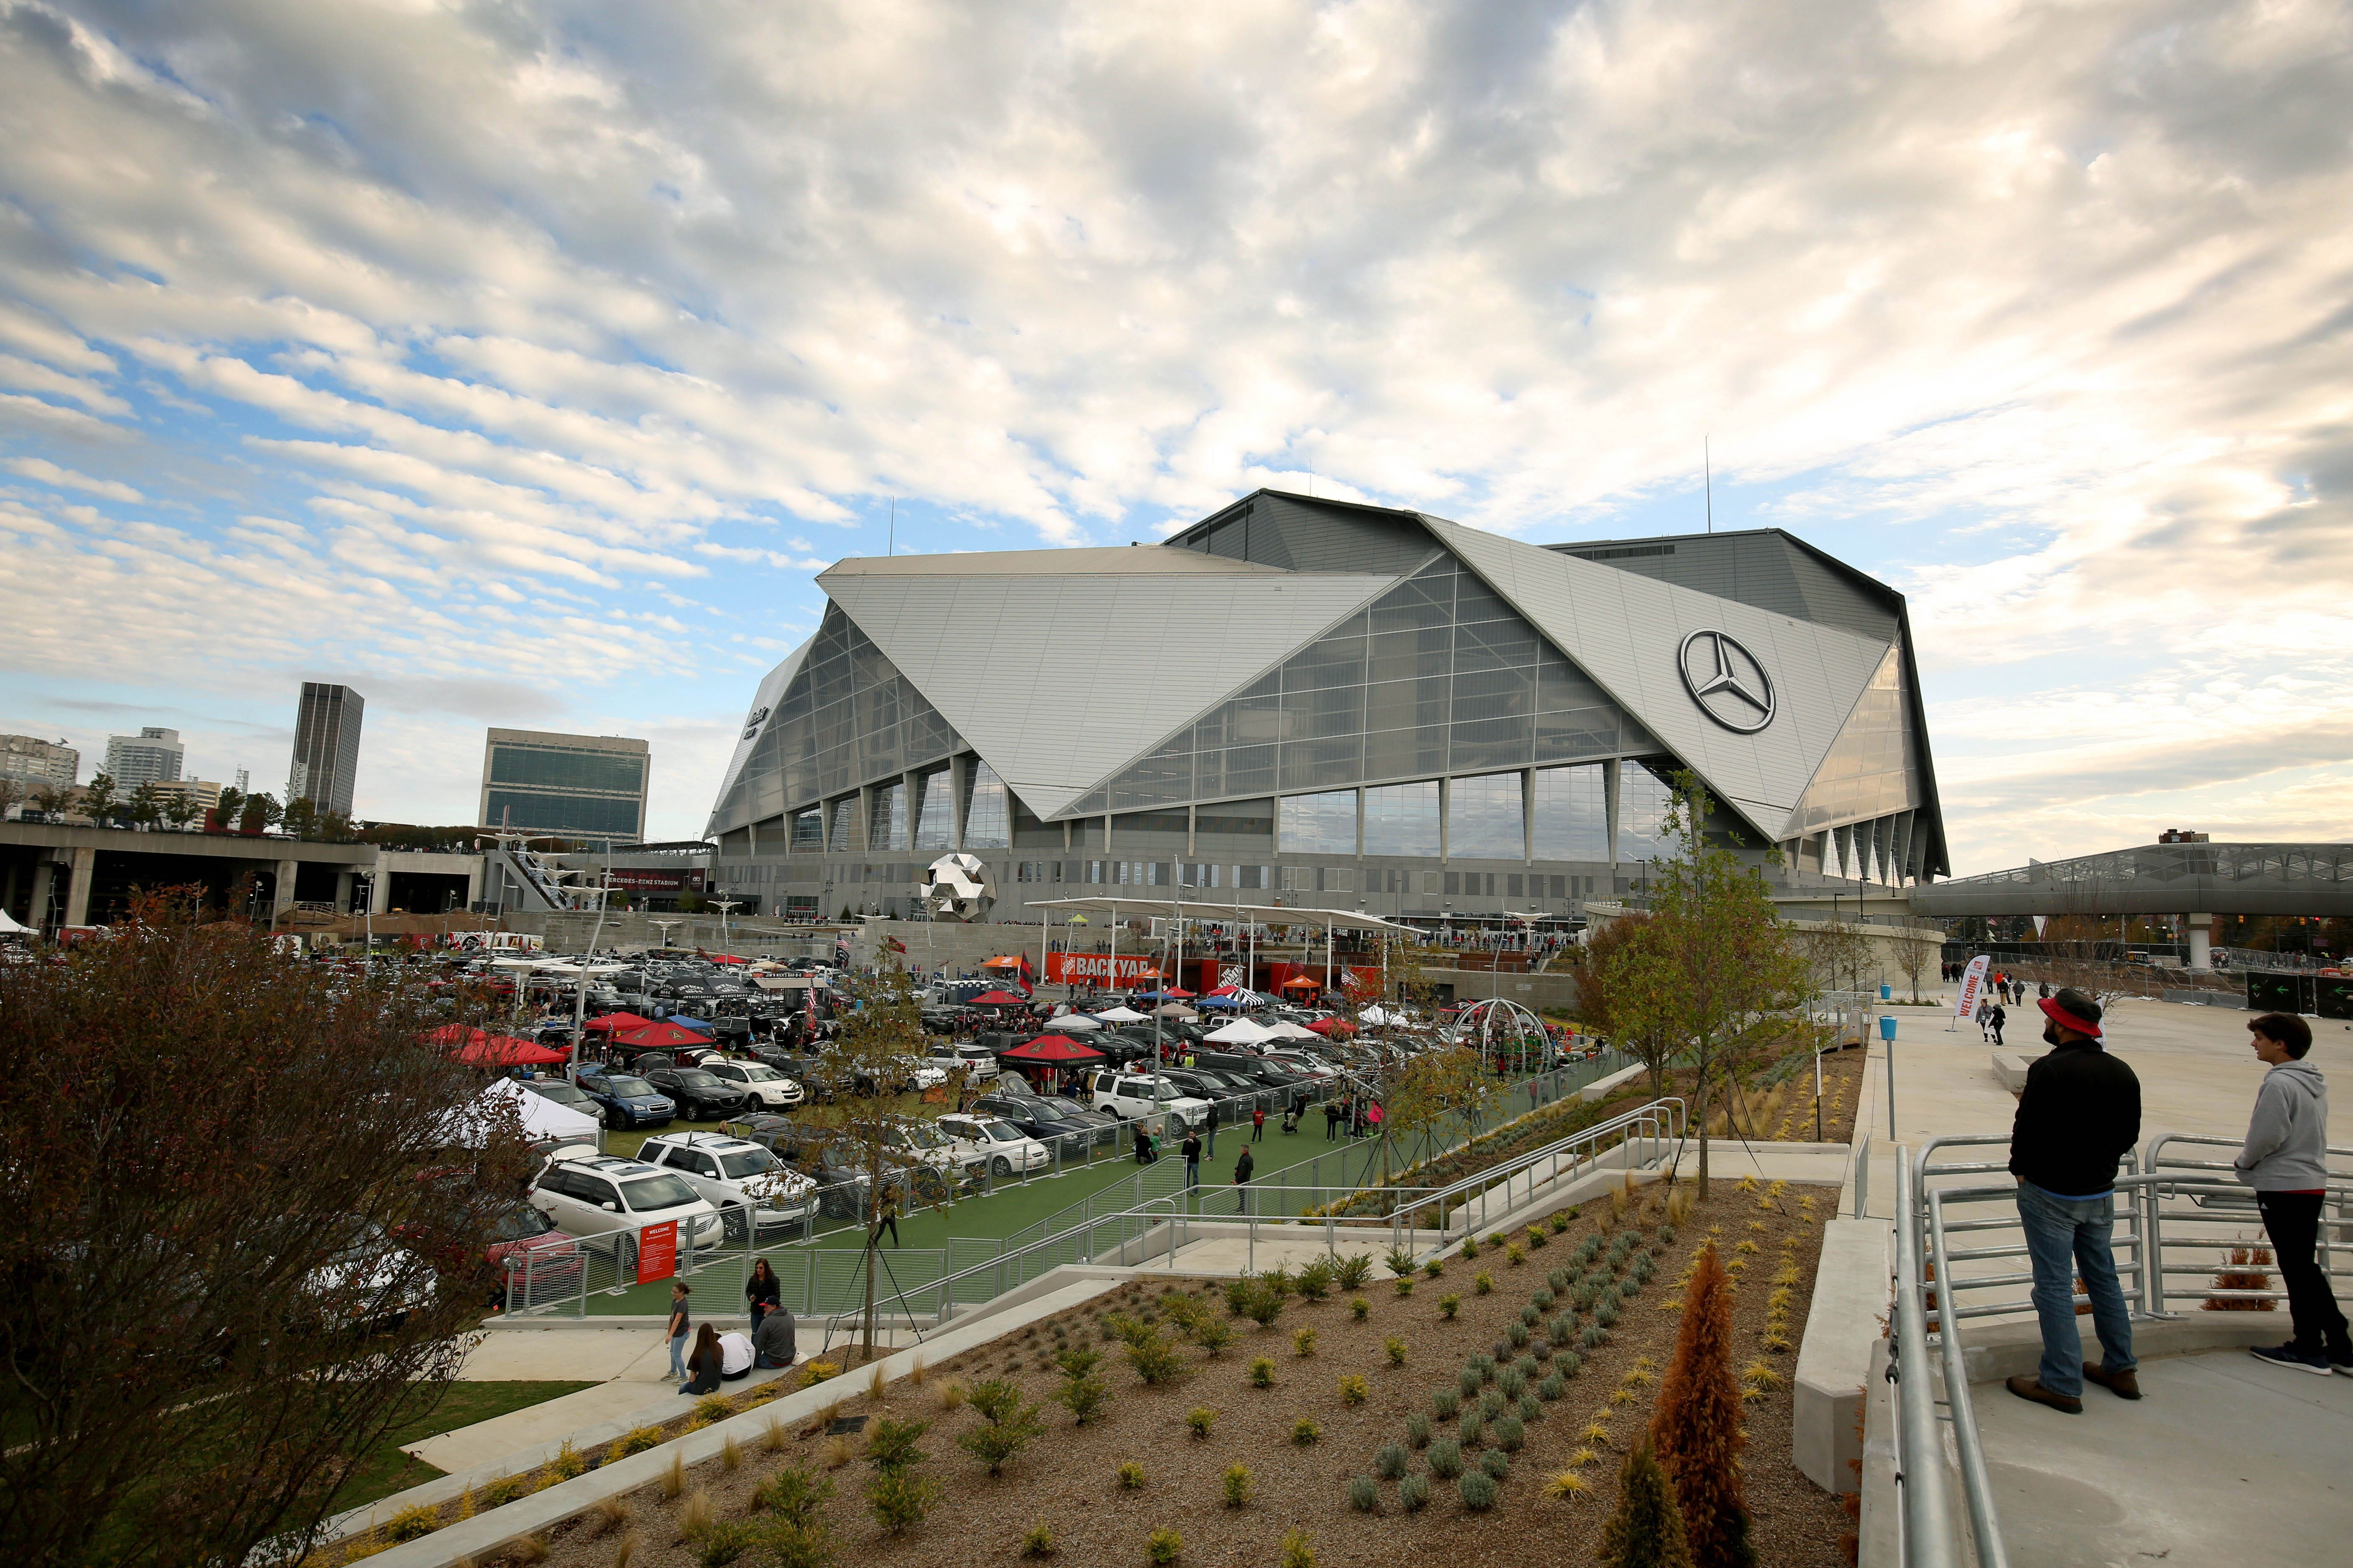 Why Mercedes-Benz Stadium's Super Bowl LIII concession prices are lower than usual